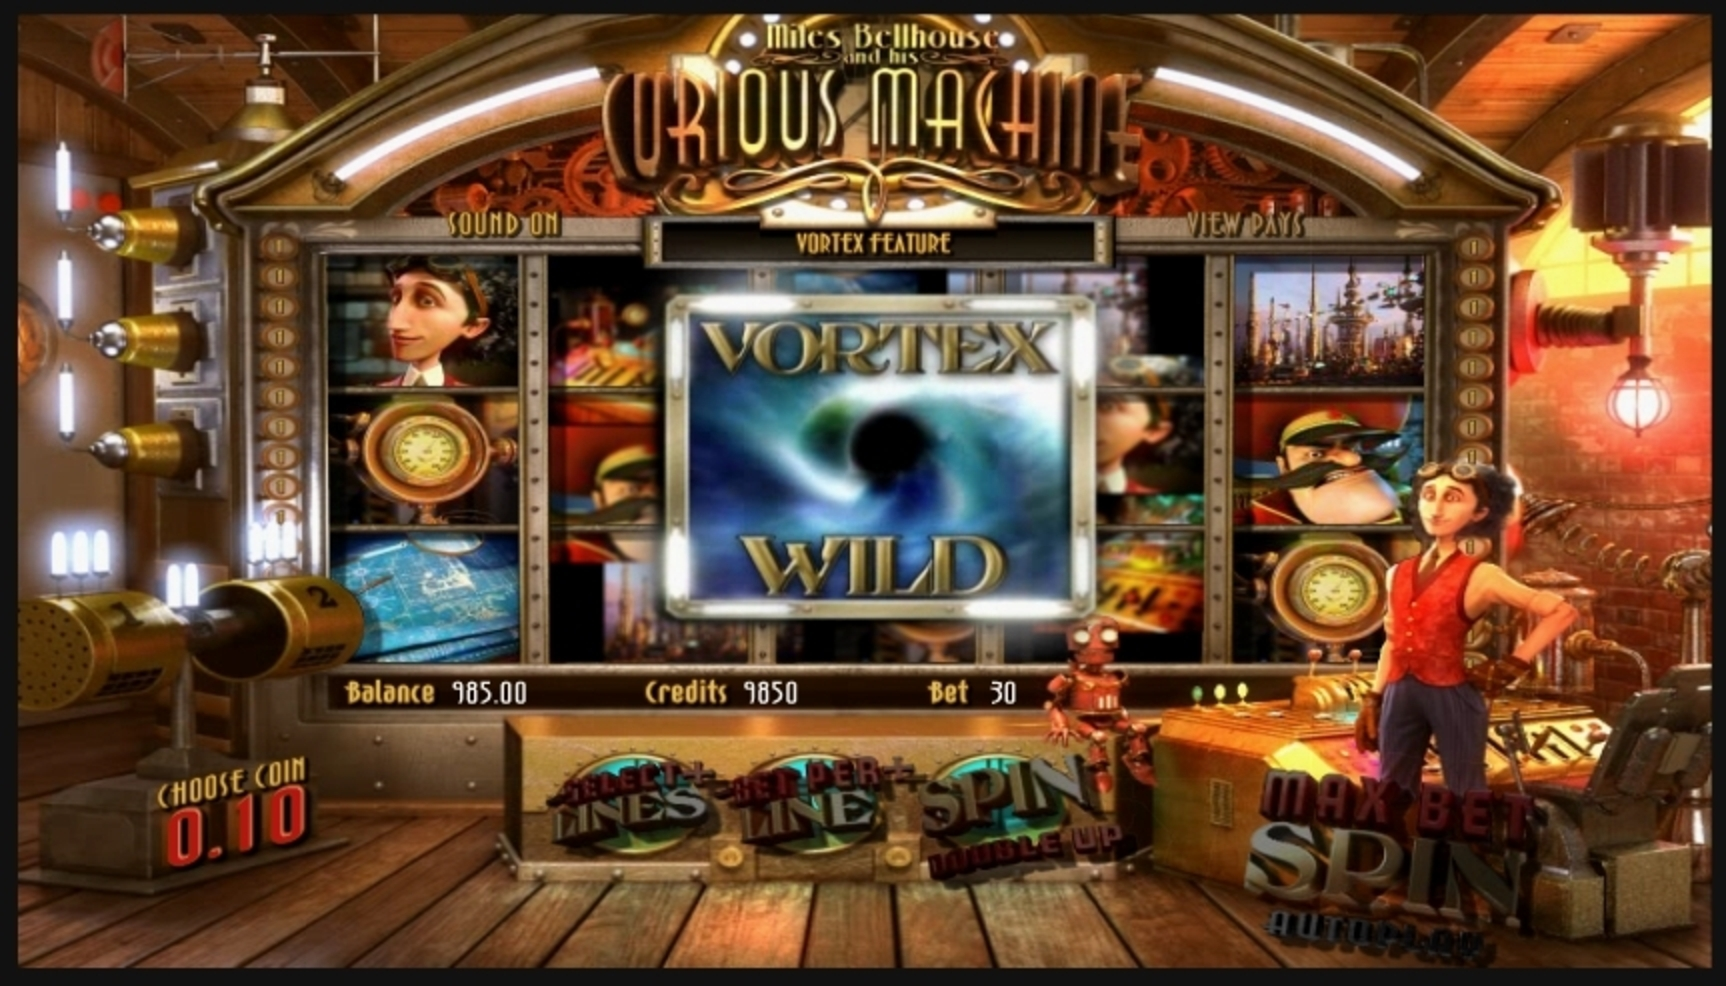 Win Money in The Curious Machine Free Slot Game by Betsoft